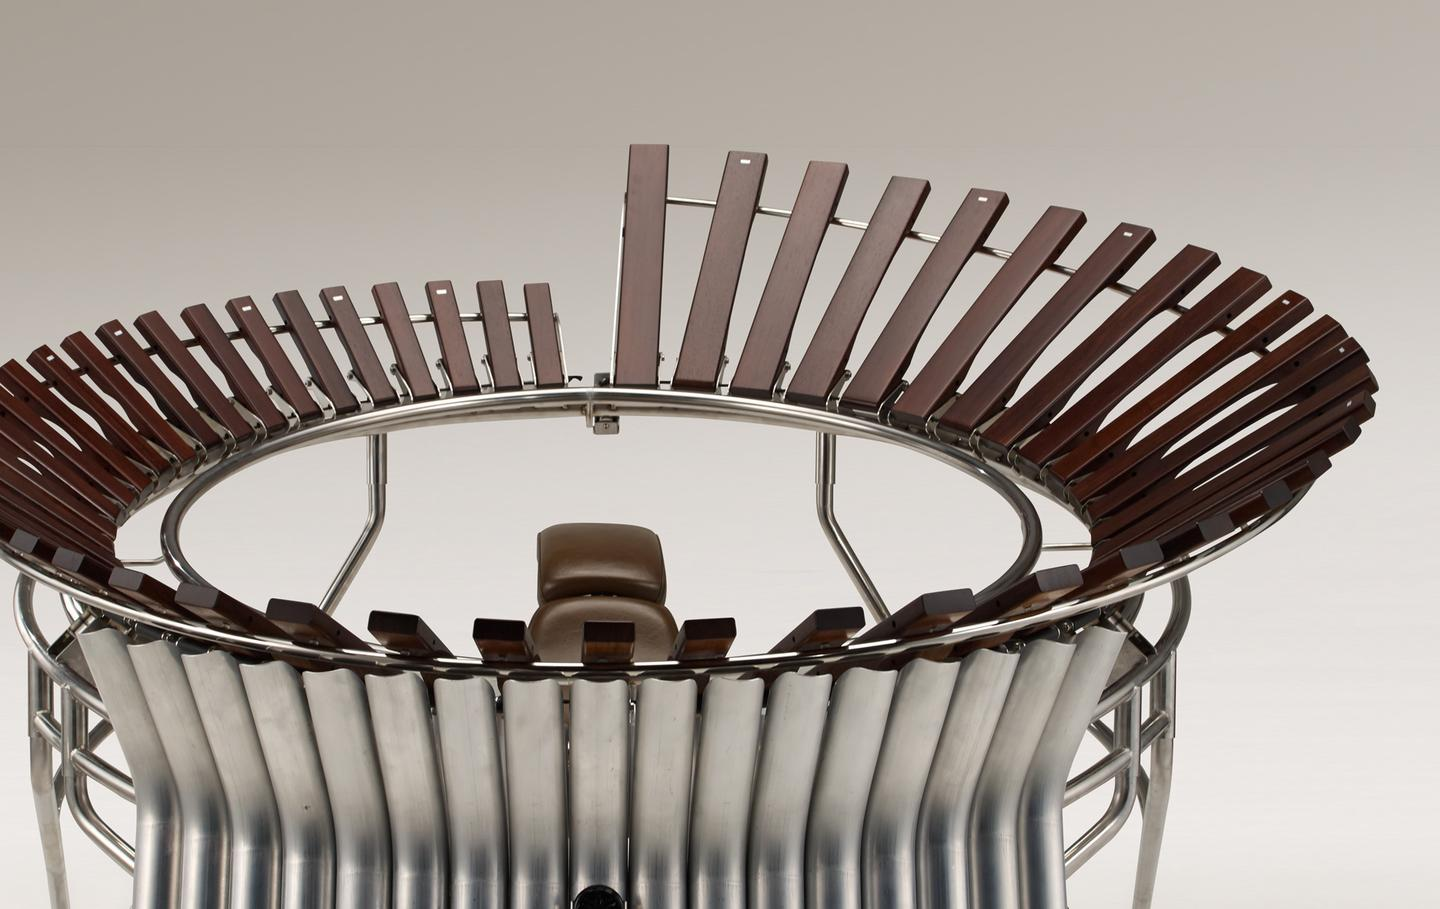 The marimba has been designed for two performers to sit inside the tubular metal frame, rather like on a motorcycle